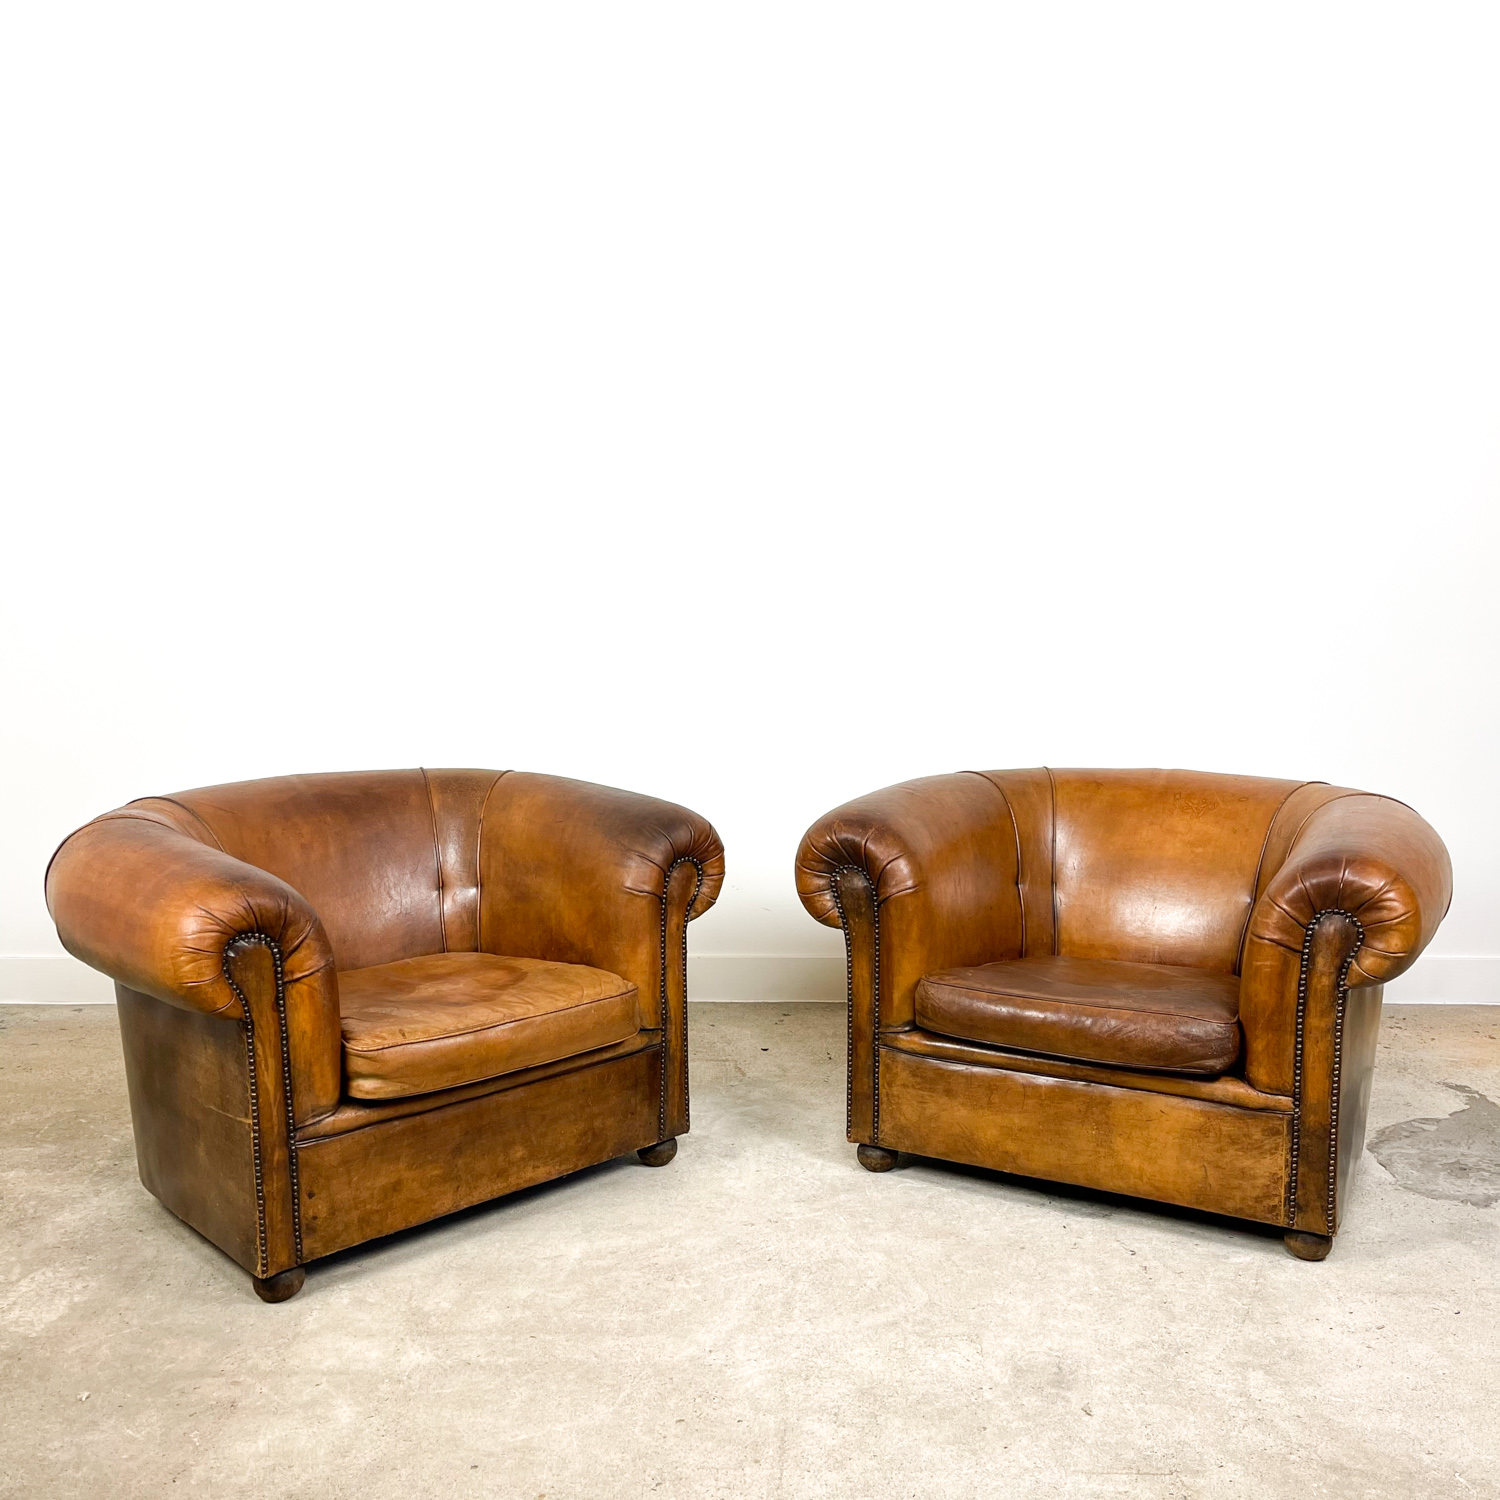 Set of 2 XXL club chairs by Nico van Oirschot vintage sheep leather